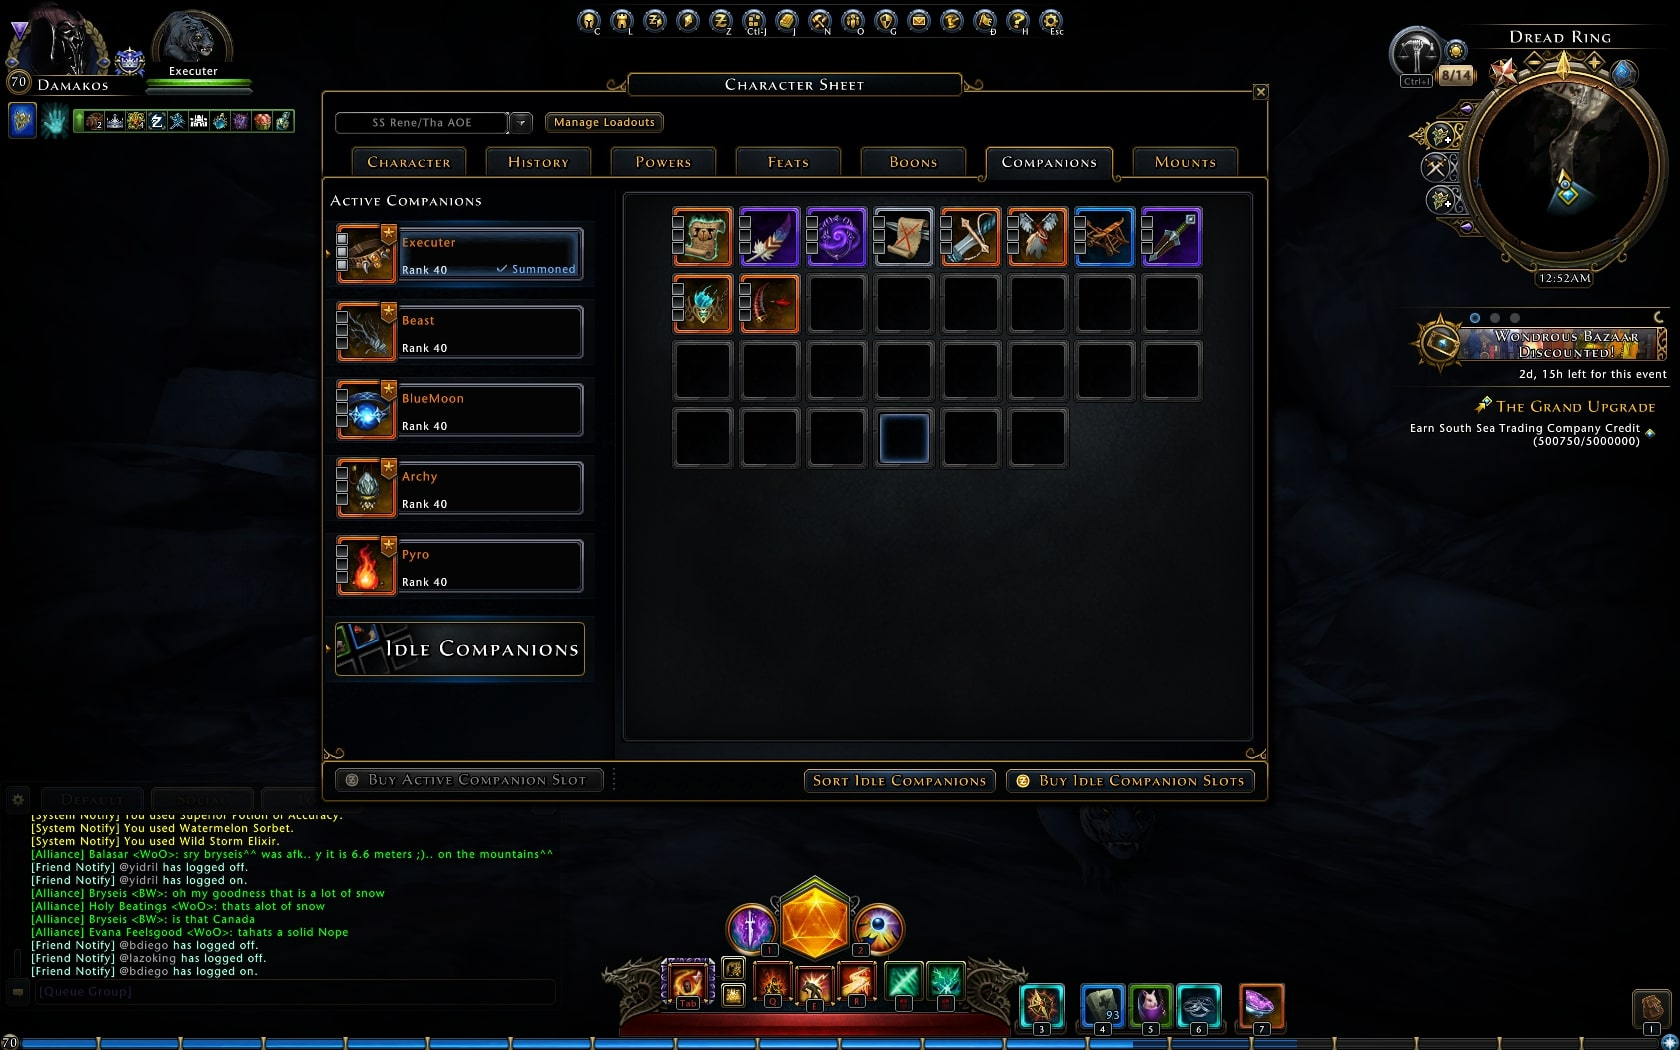 Selling] Selling neverwinter account multi chars,legendary mounts